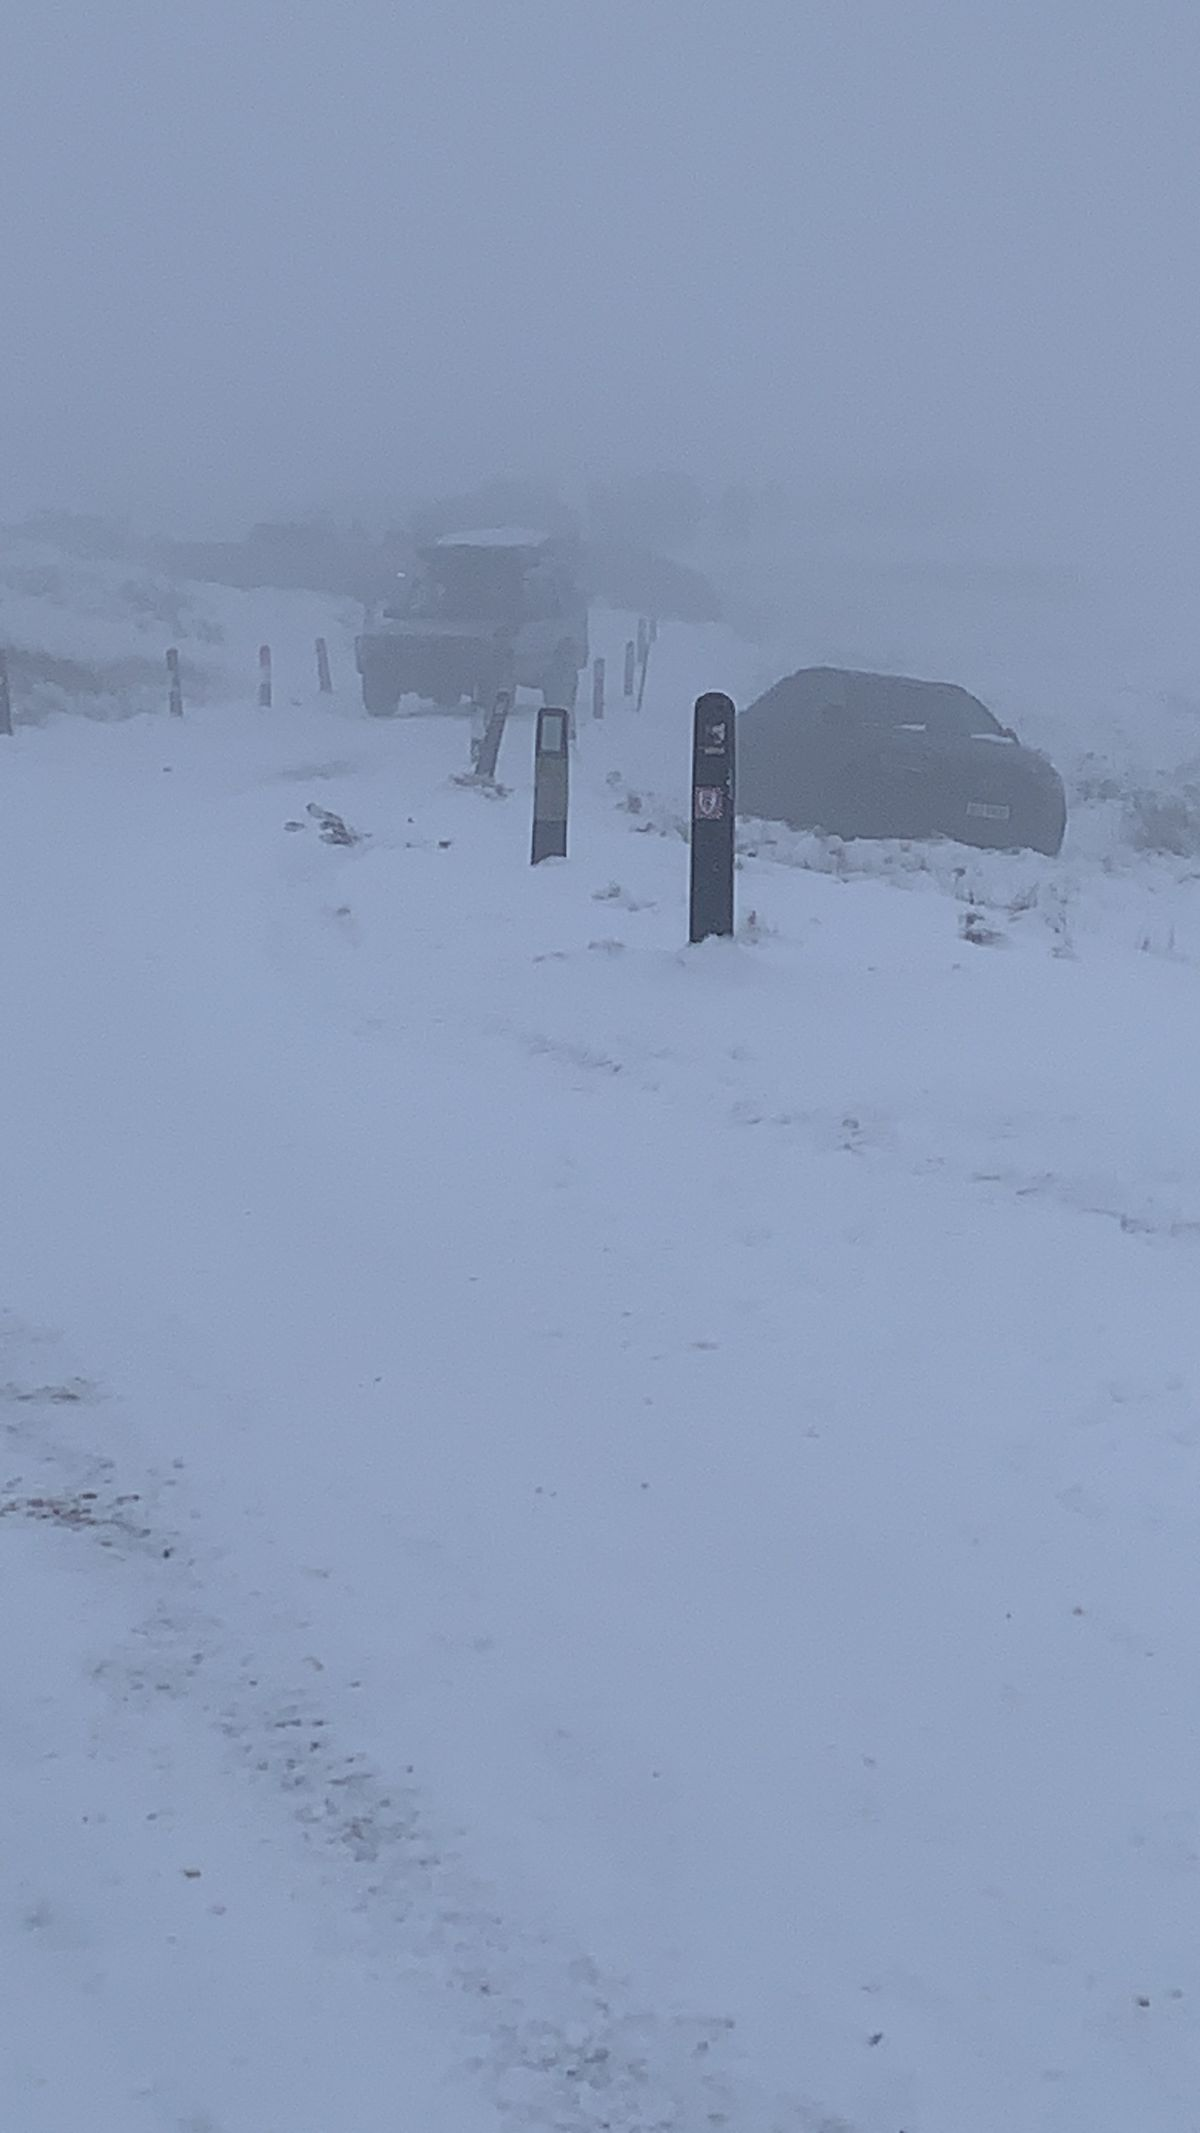 Cars were stranded in the snow at Clee Hill